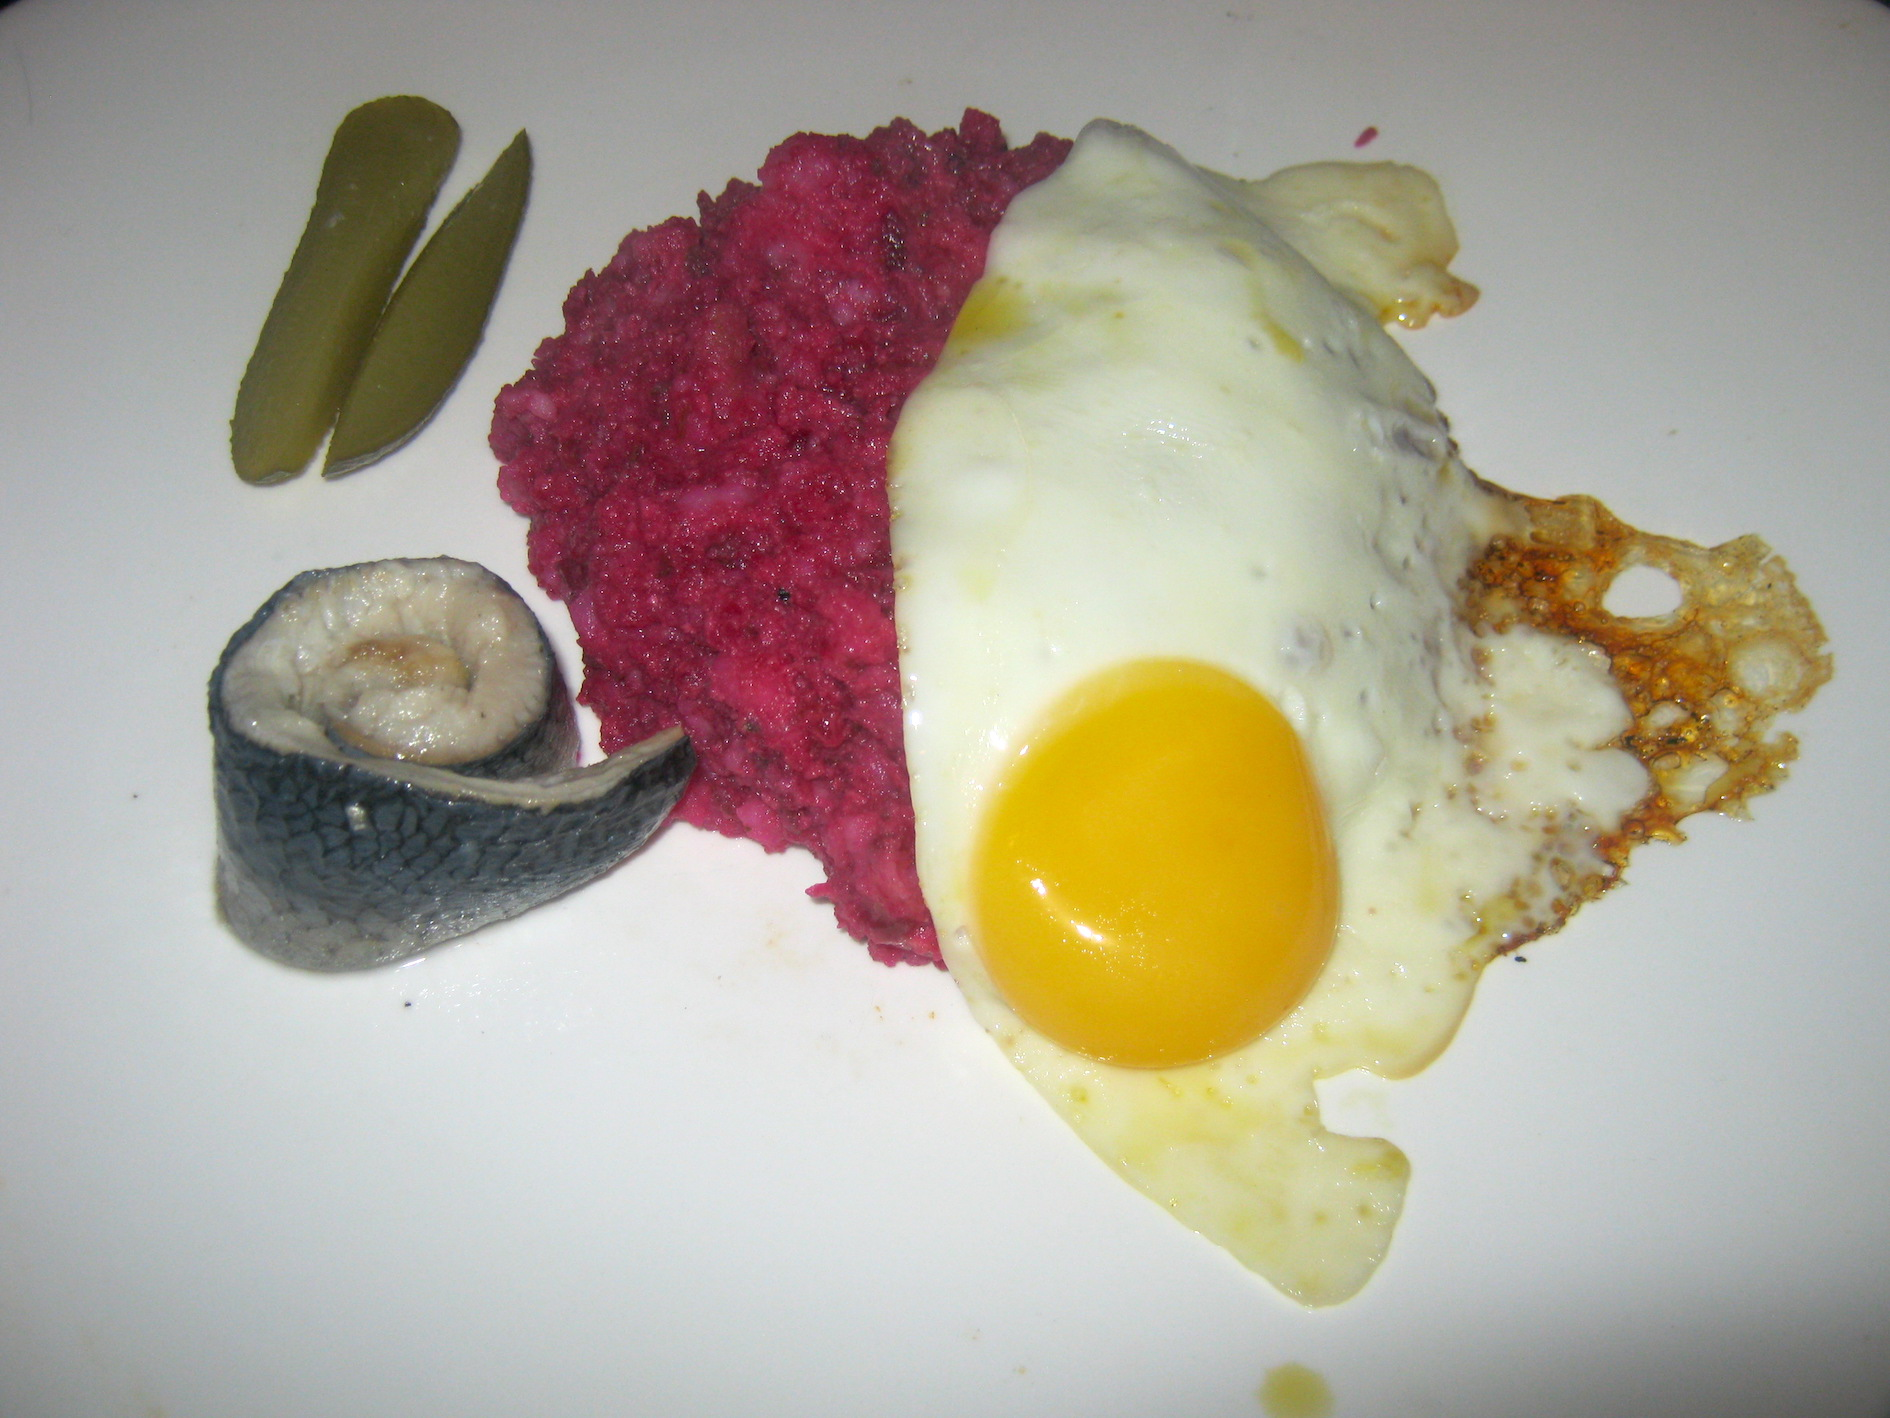 Traditional Lobscouse with Pickled herring, potato, corned meat,beetroot, gherkins and egg on a plate